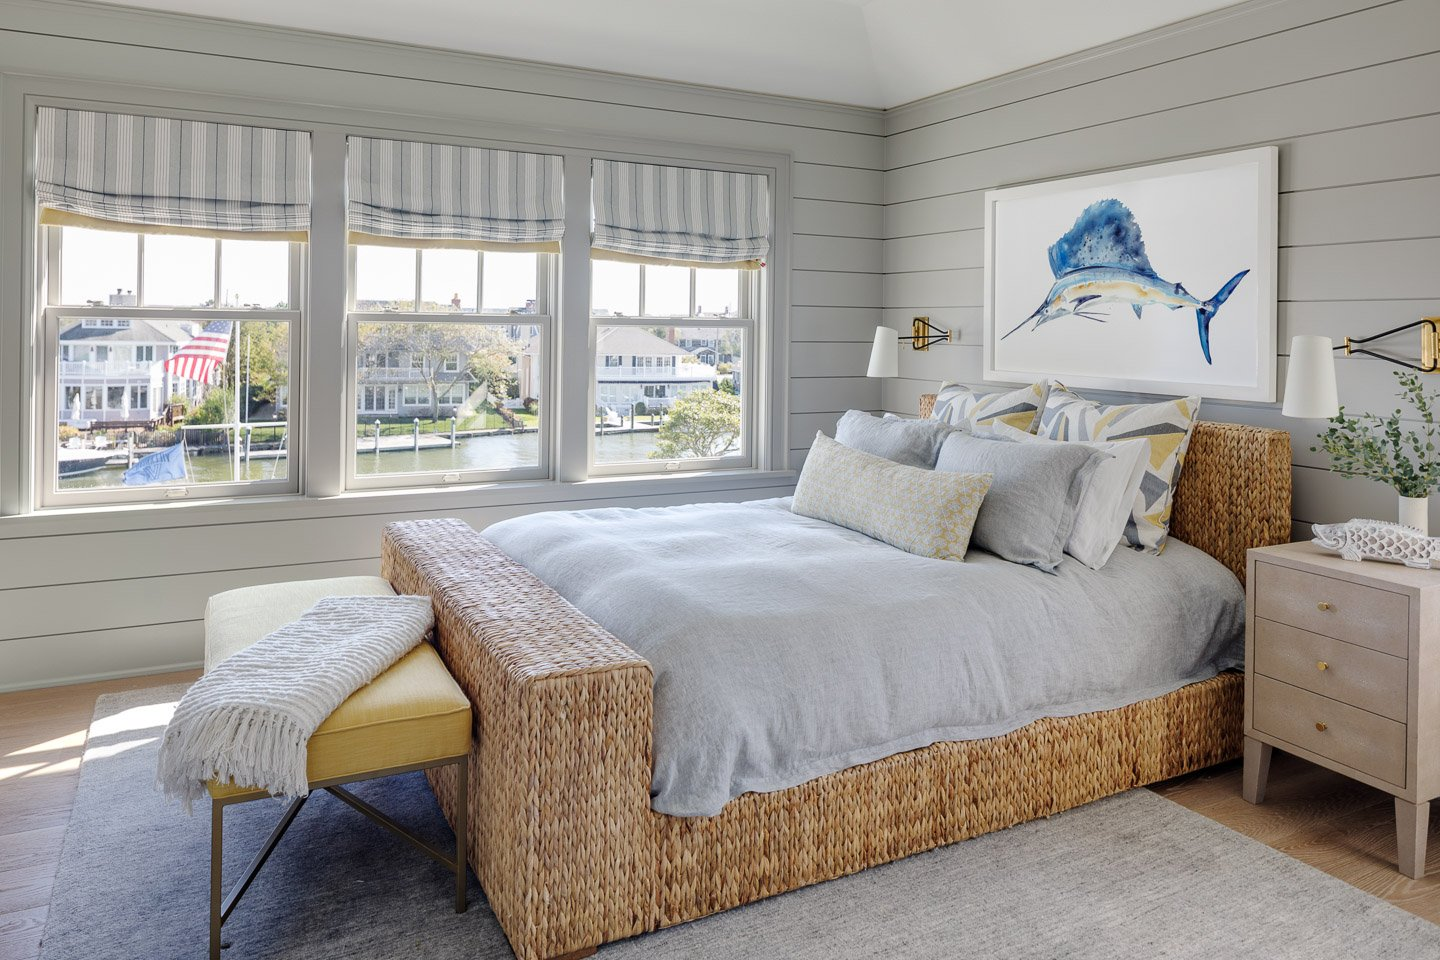 Blakely Interior Design | The Jersey Palm Project | Son's bedroom